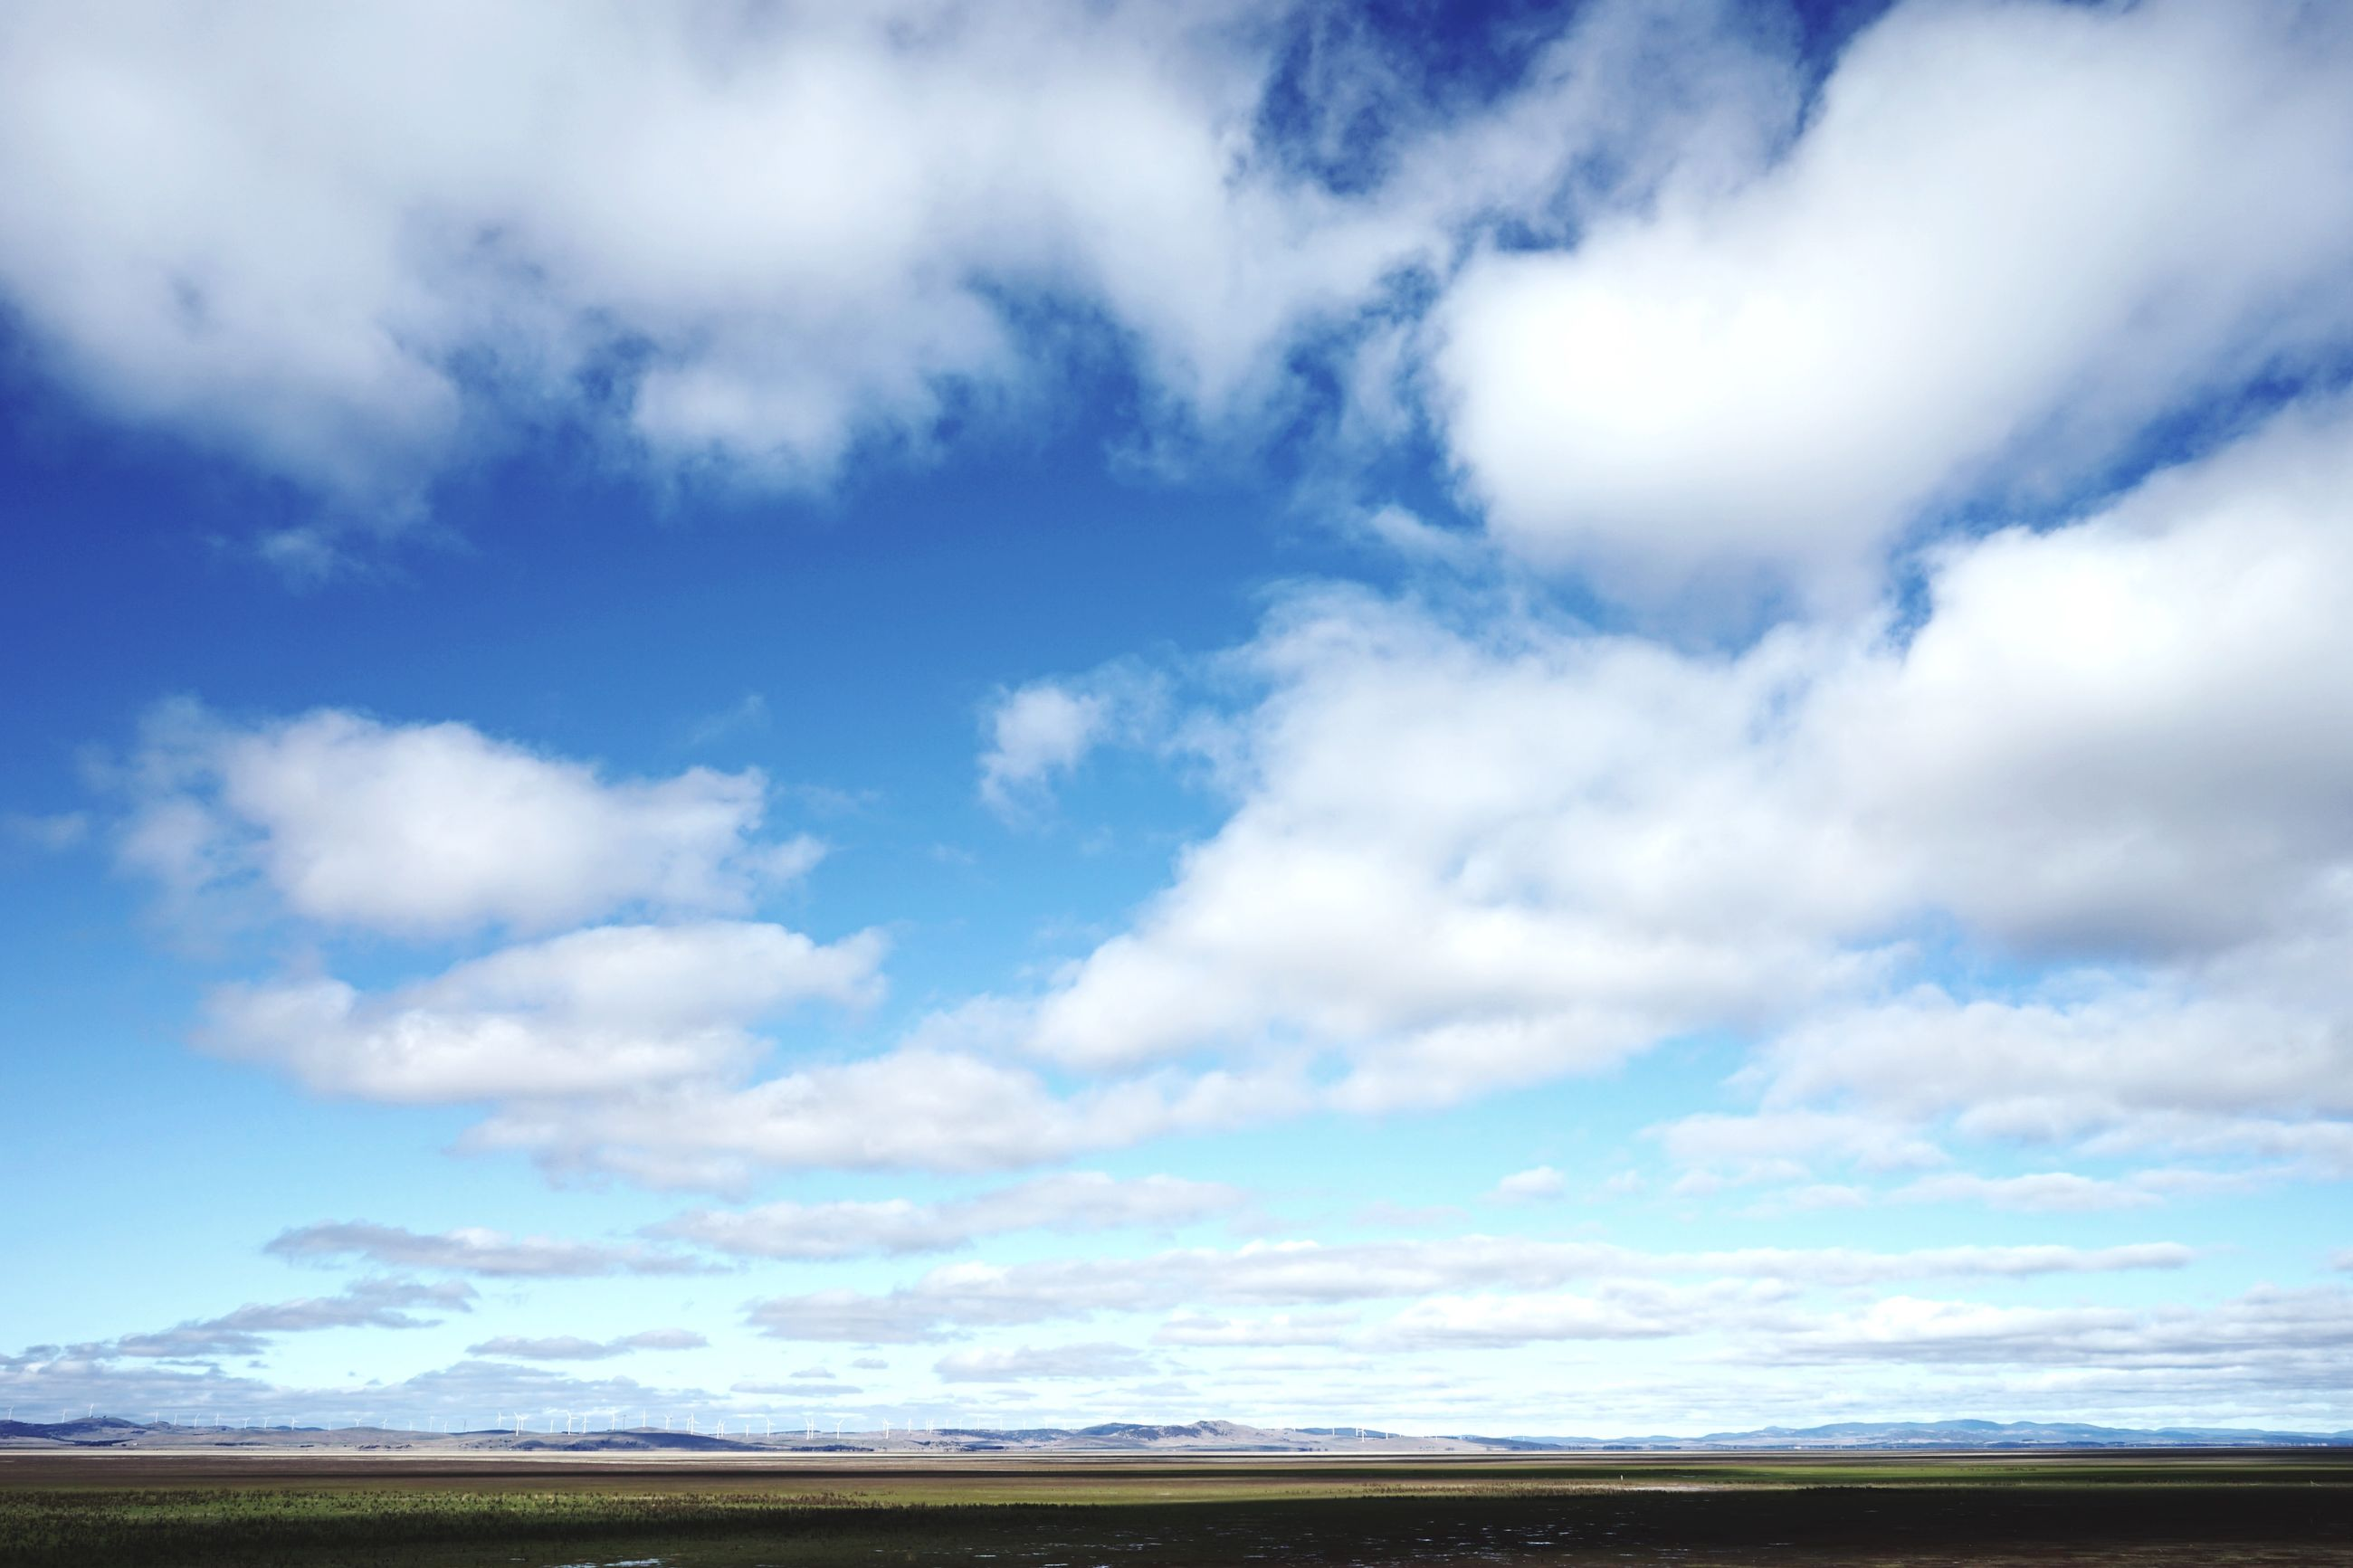 sky, tranquil scene, tranquility, landscape, scenics, cloud - sky, beauty in nature, cloud, nature, field, blue, cloudy, horizon over land, non-urban scene, idyllic, remote, day, outdoors, no people, solitude